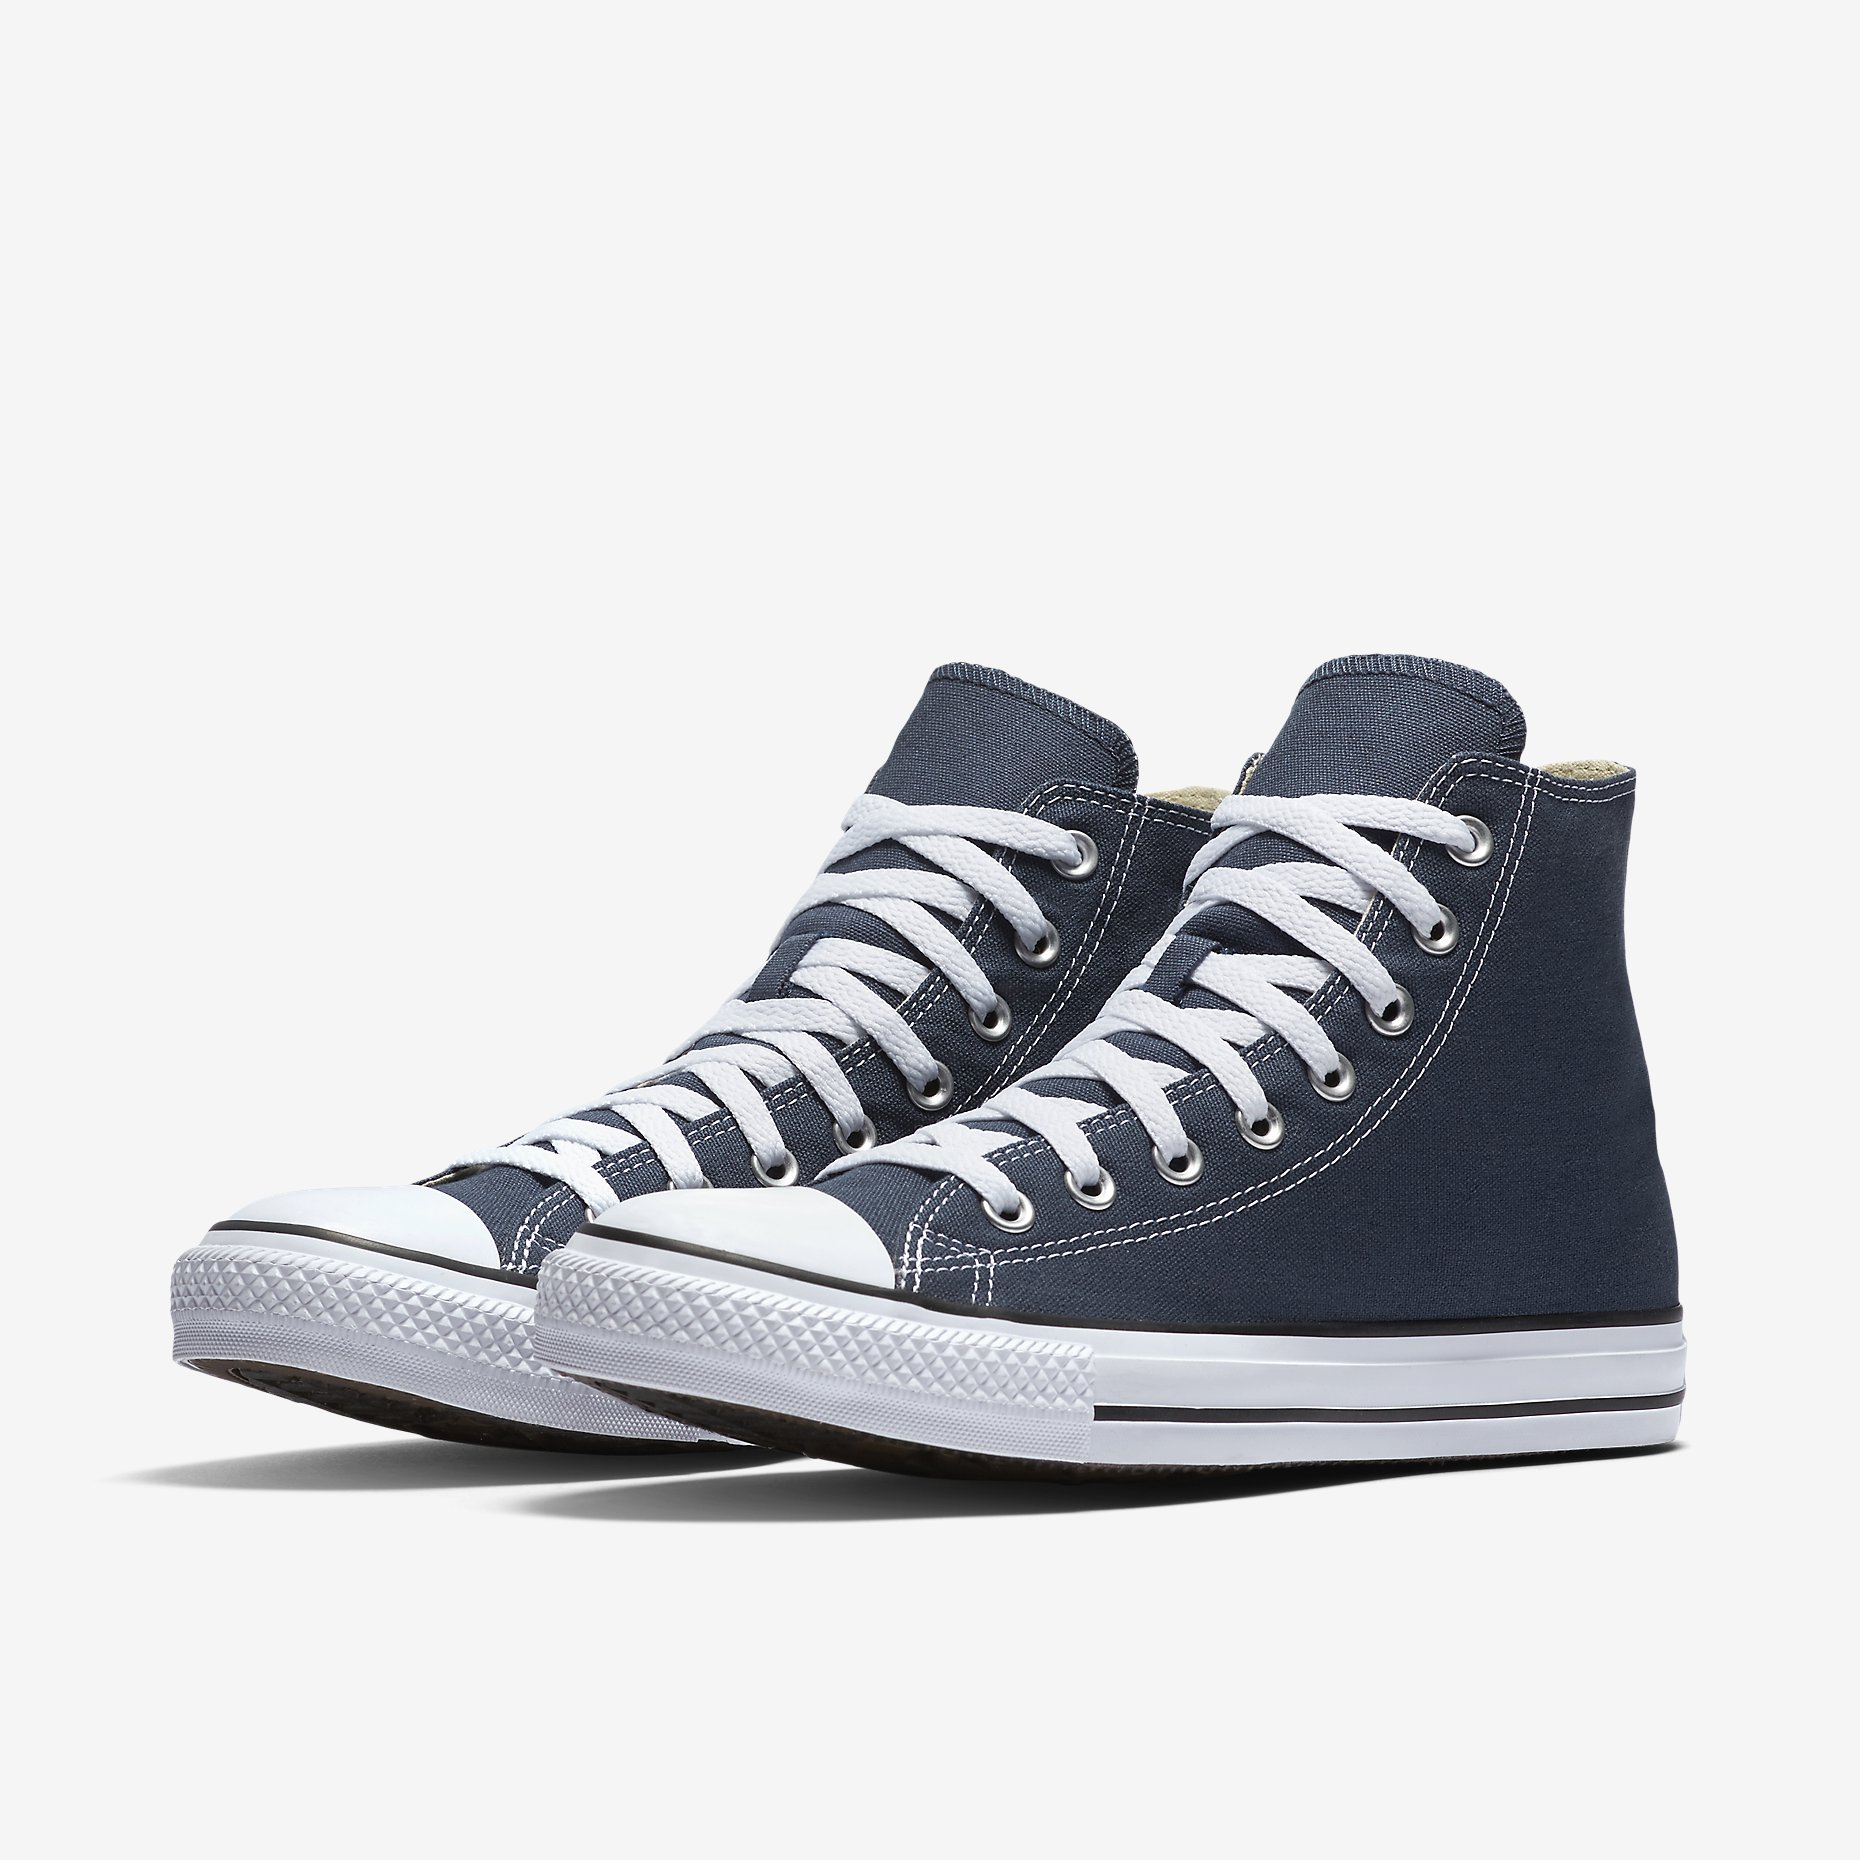 Converse Chuck Taylor All Star High Top Navy Spinners Sports